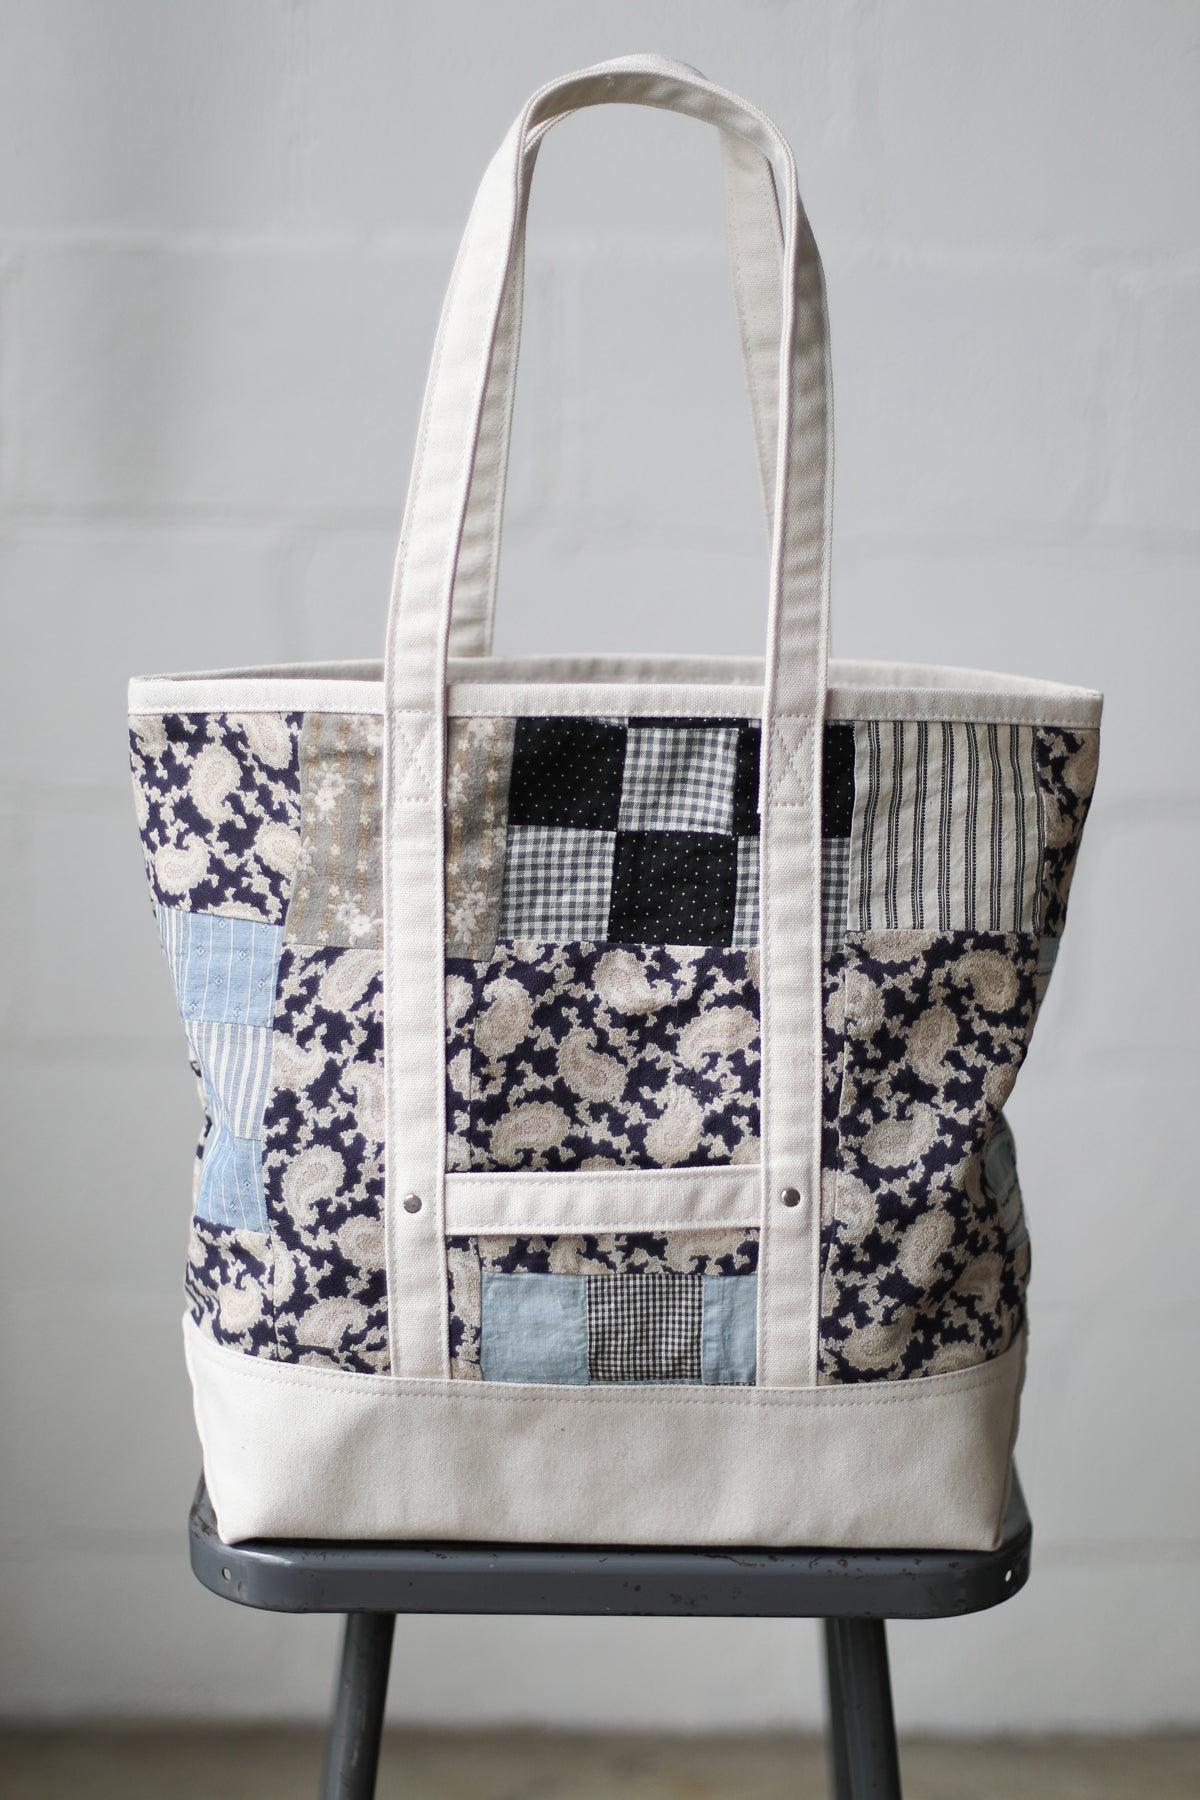 Reclaimed Market Tote No. 078